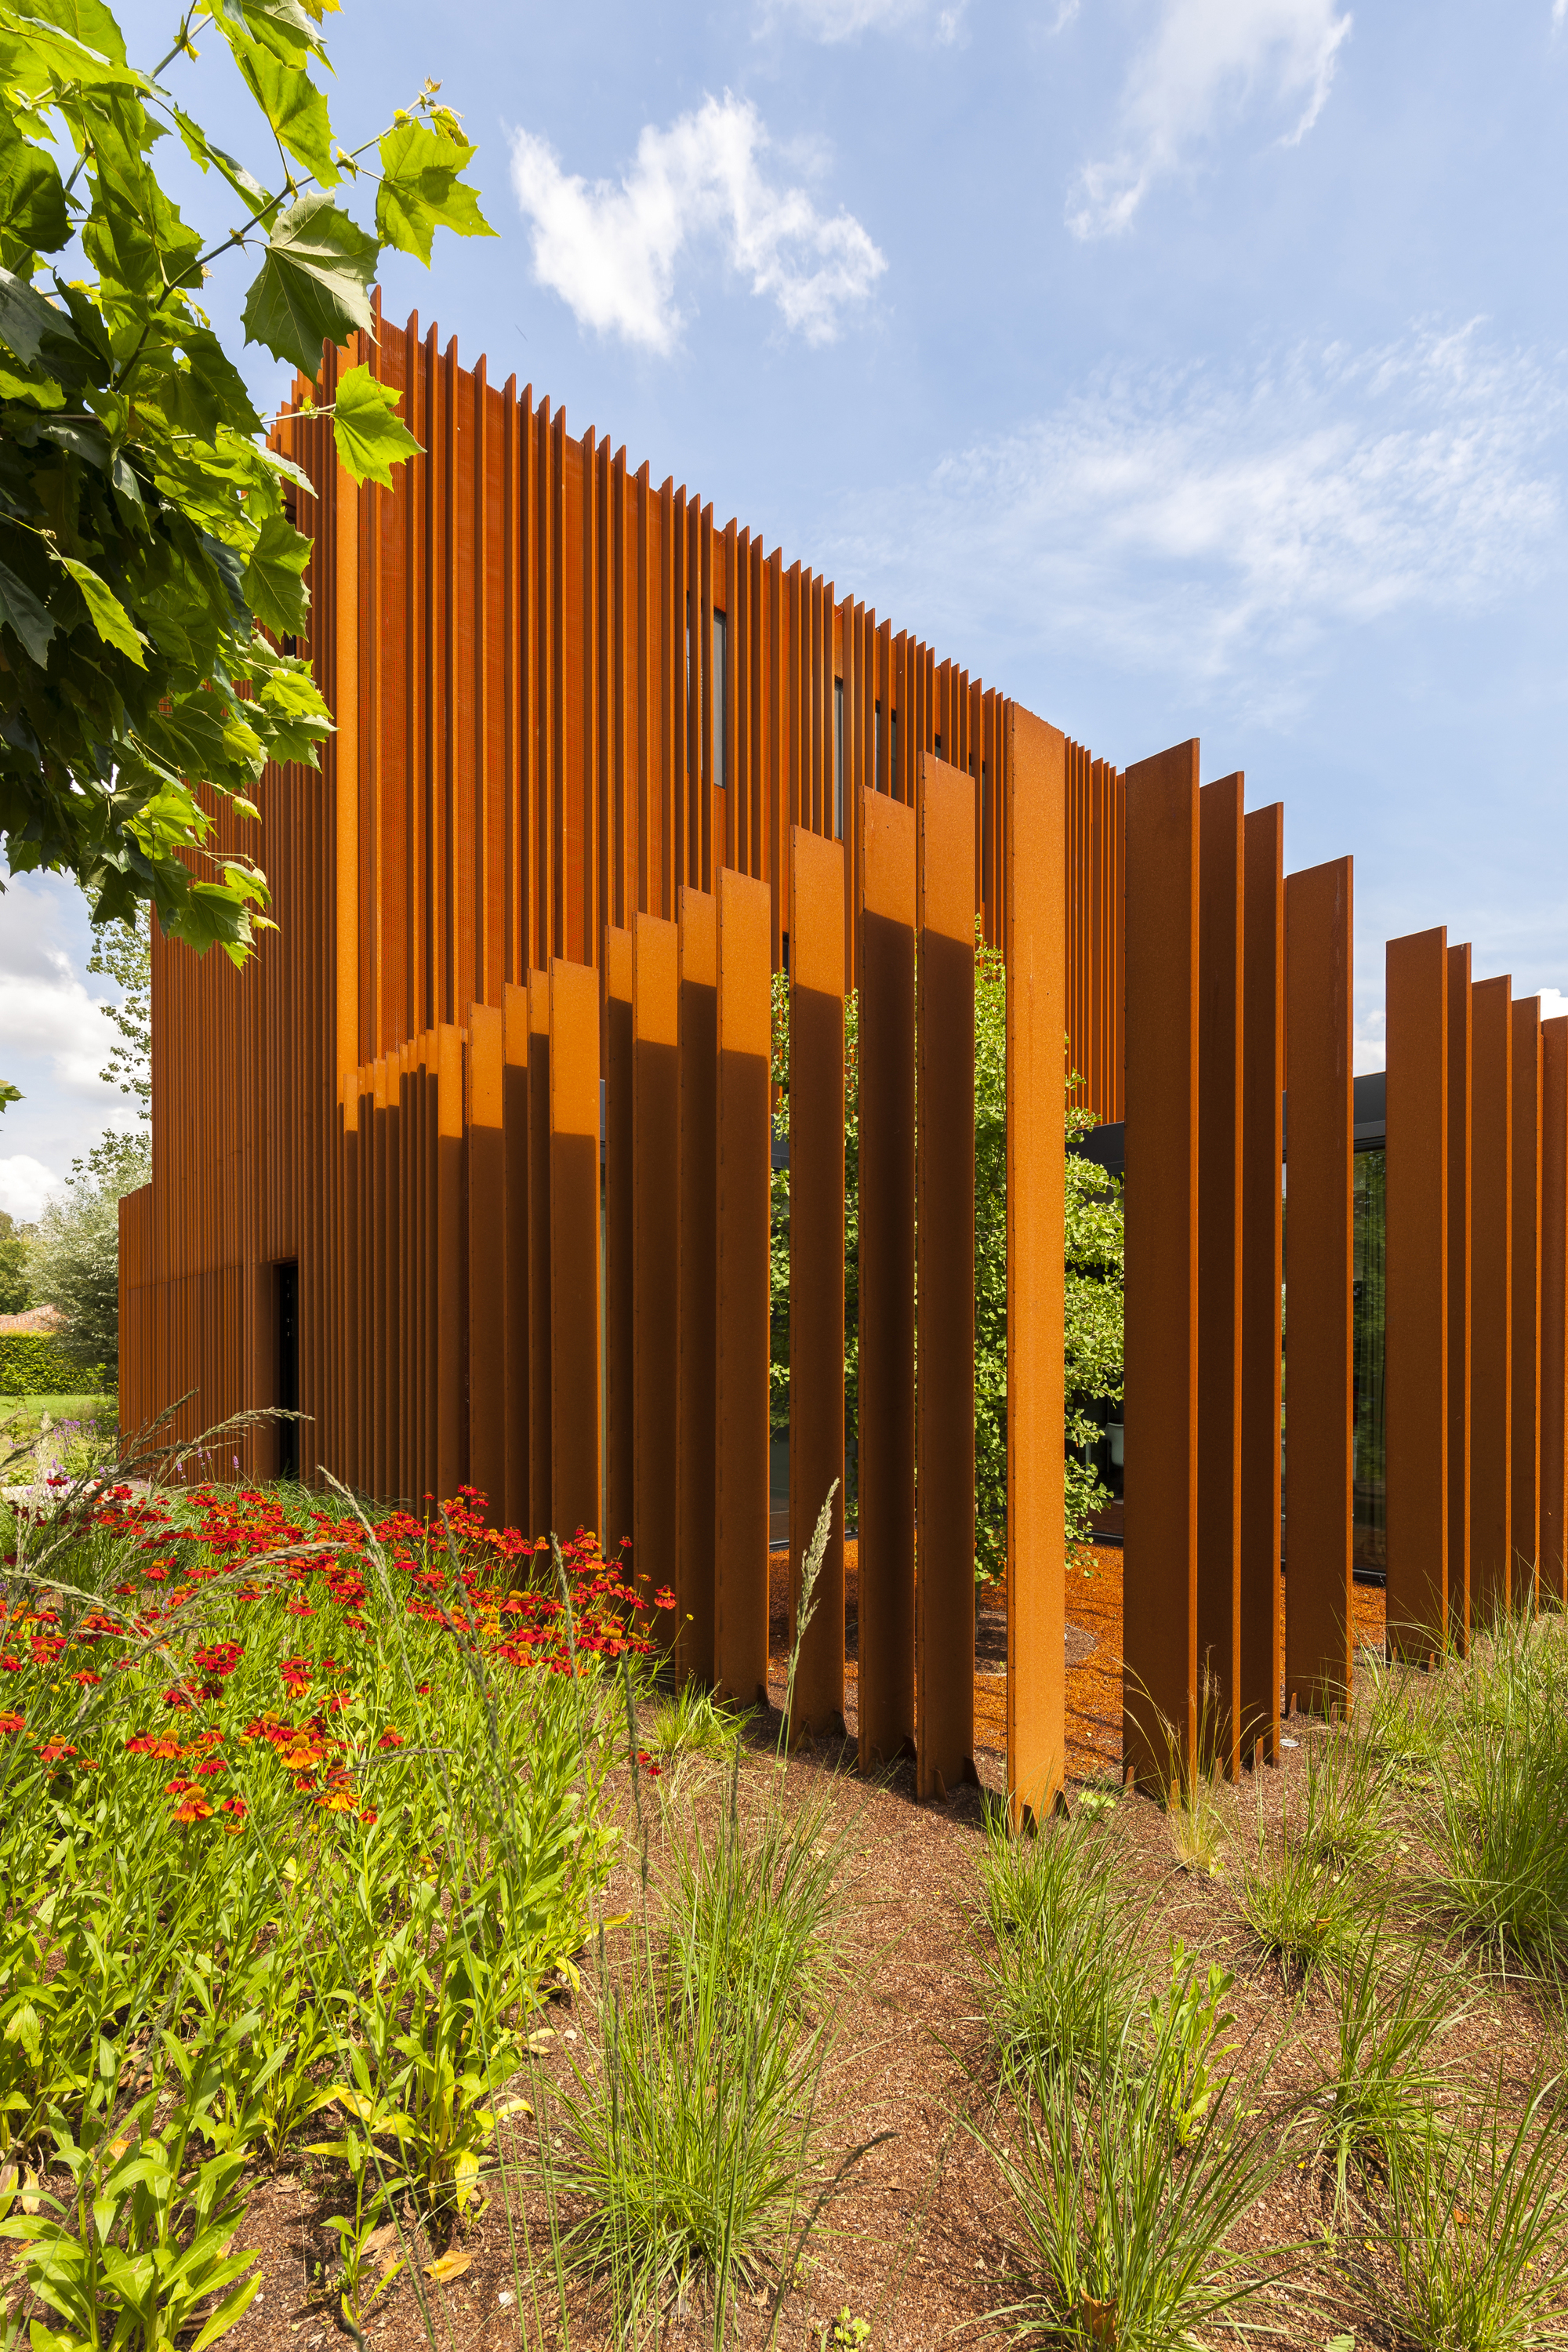 AD ROUND-UP: 9 PROJECTS THAT MAKE CREATIVE USE OF COR-TEN STEEL